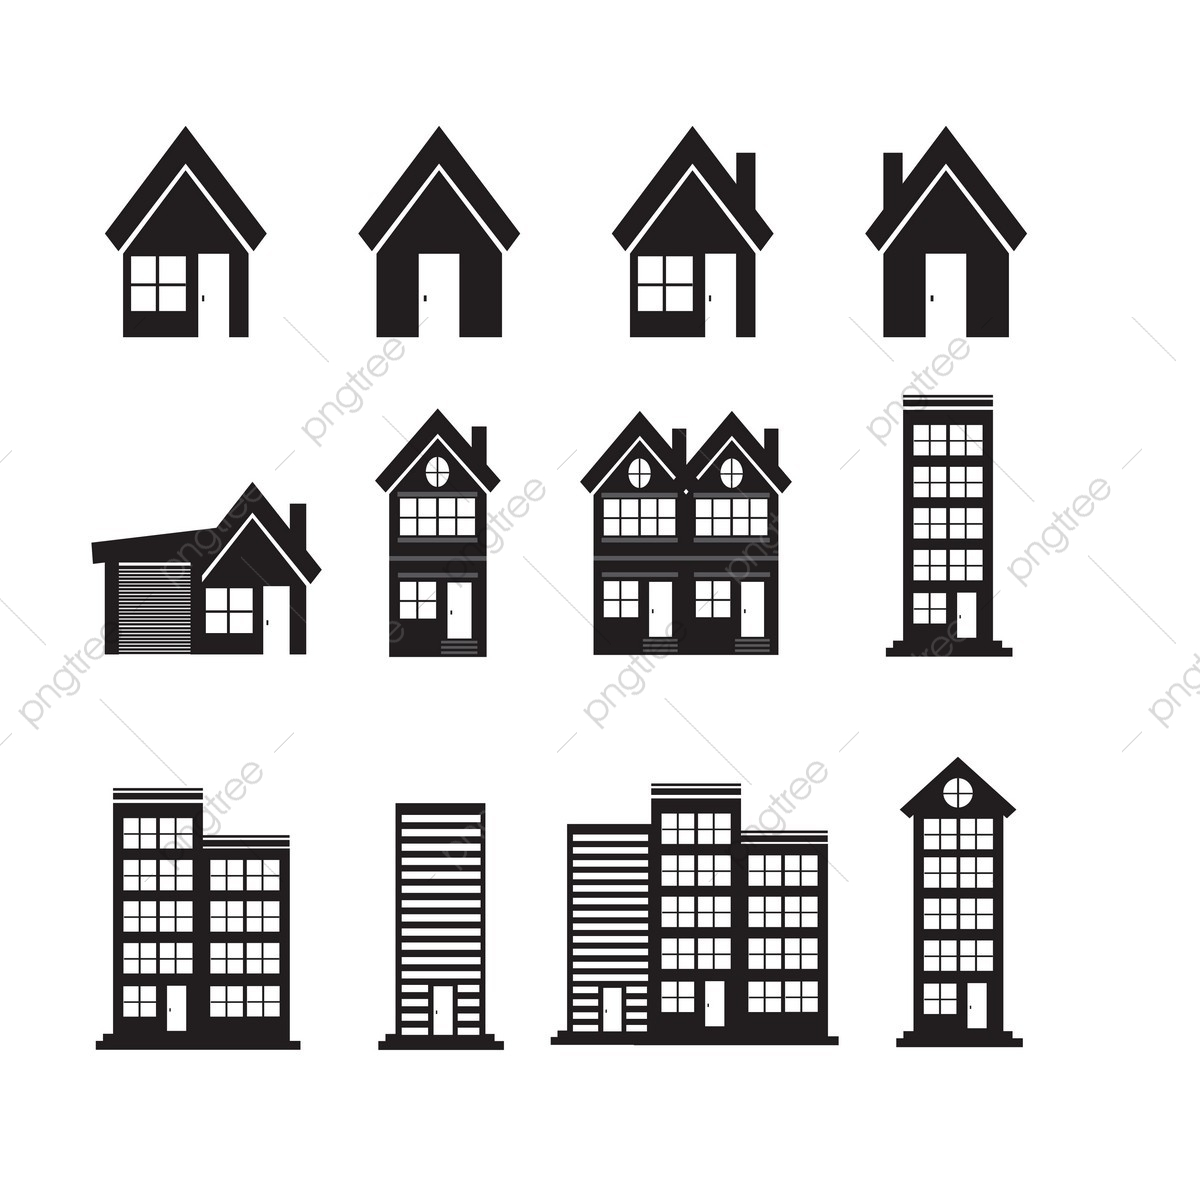 home icon and real estate concept home icons concept icons home iconse png and vector with transparent background for free download https pngtree com freepng home icon and real estate concept 3570441 html